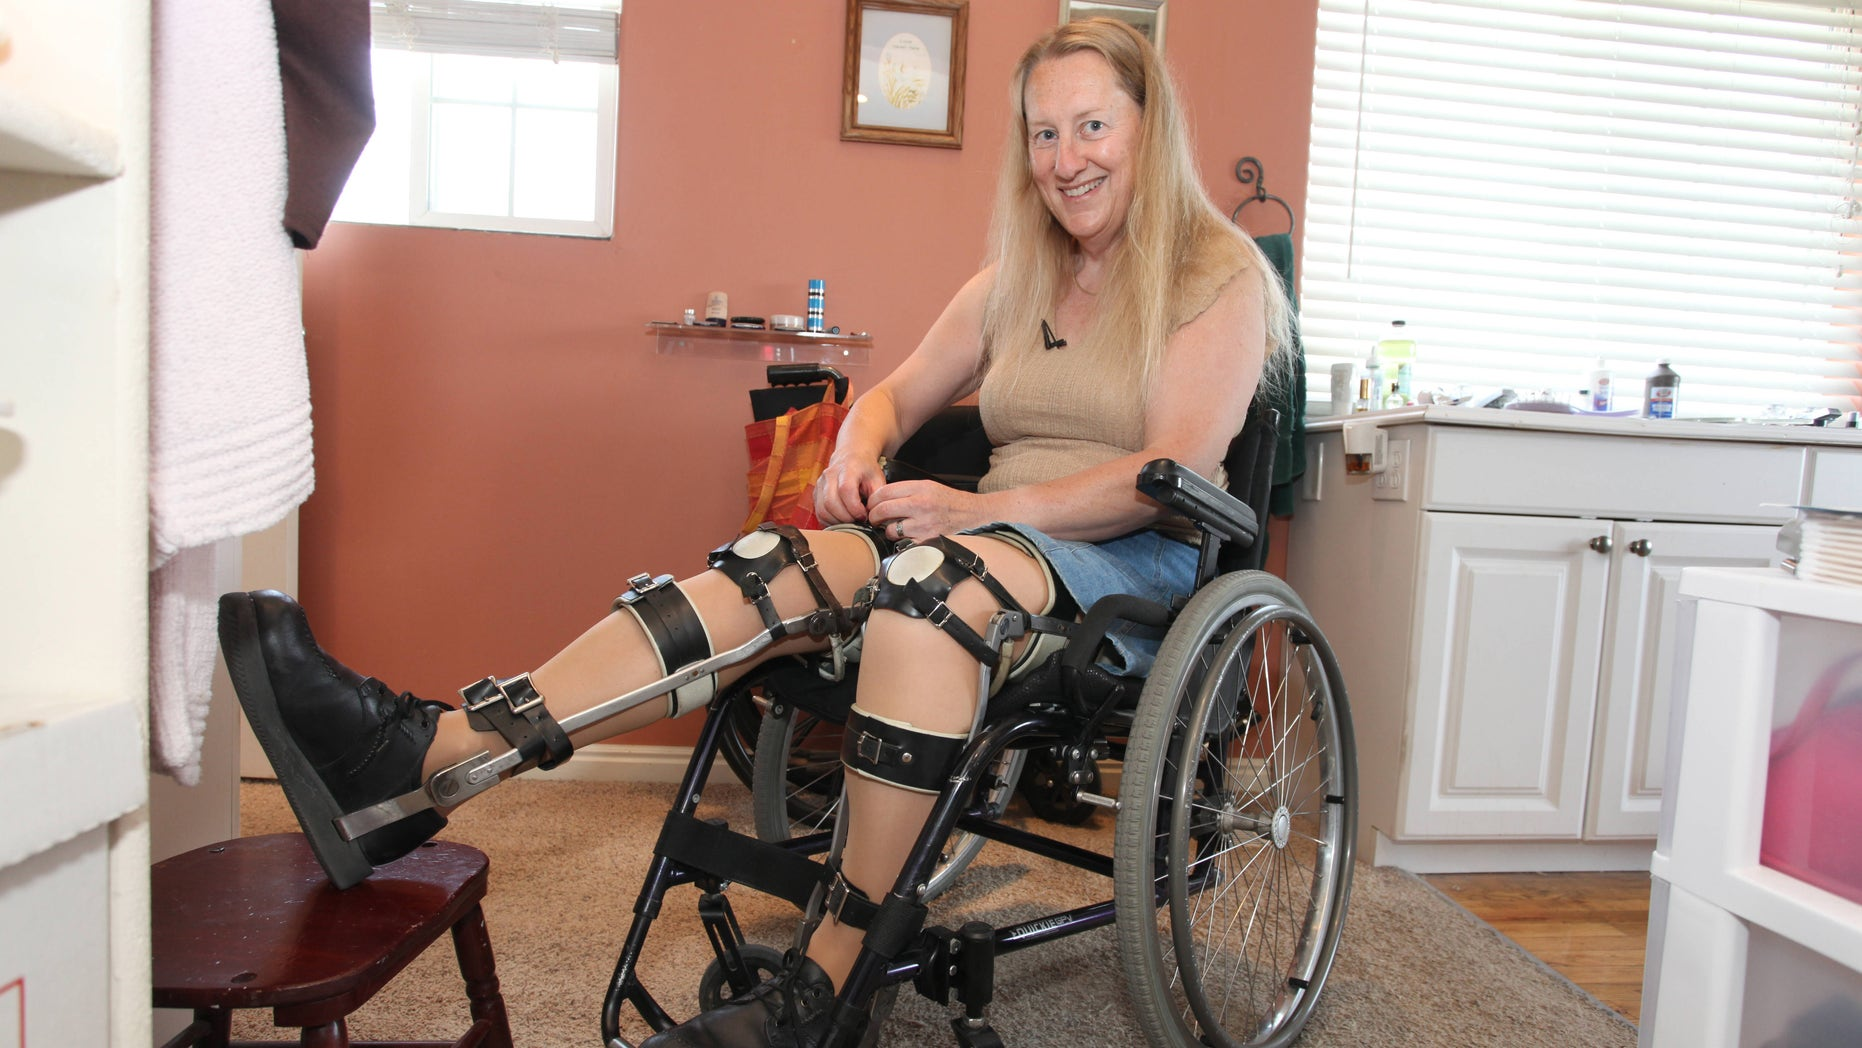 Chloe Jennings-White adjusting her leg braces at her home in Salt Lake City, Utah.  Chloe-Jennings White wears leg braces and uses a wheelchair, even though her legs work fine, and she does not need them.